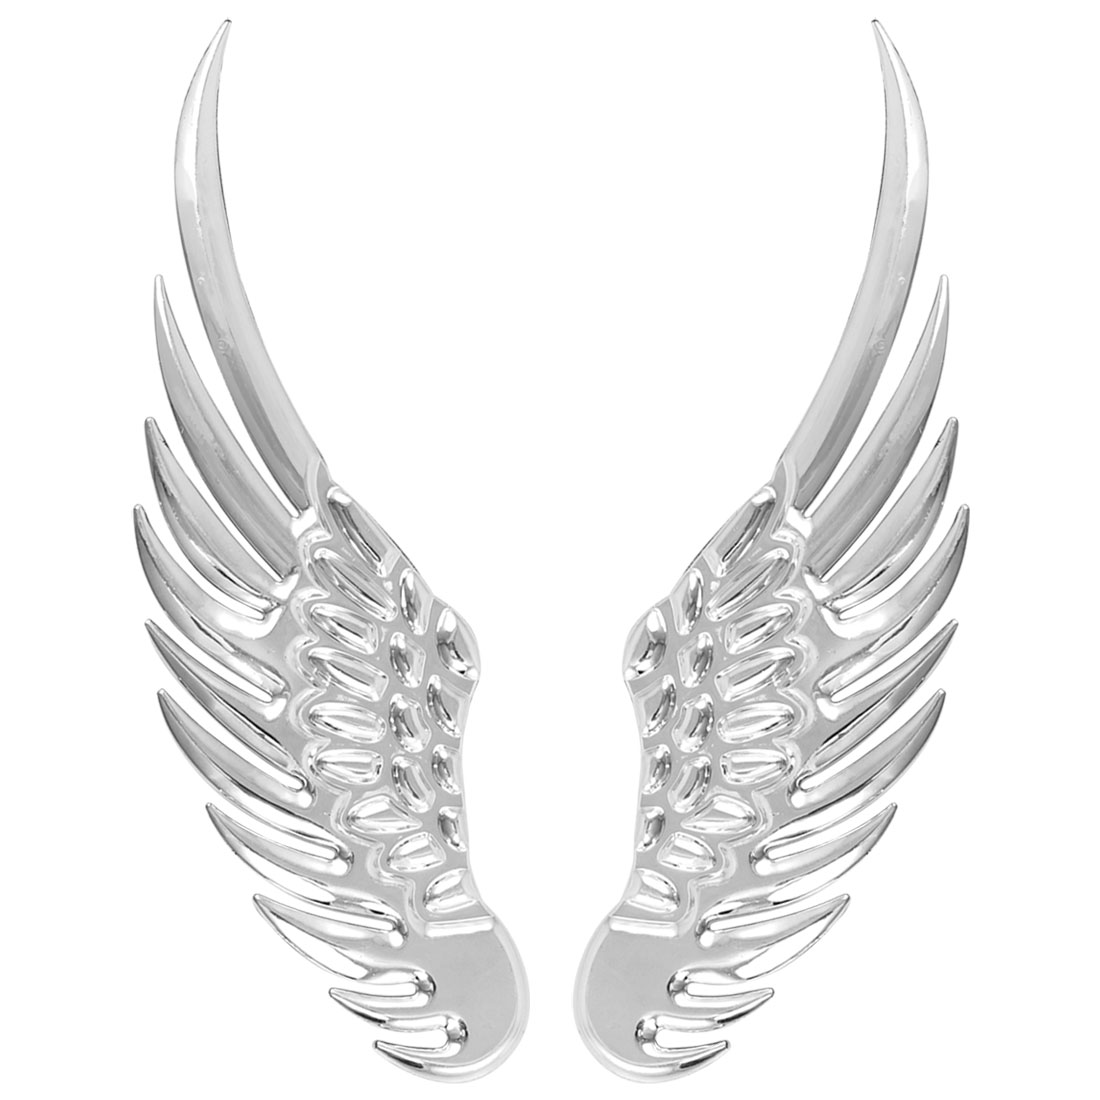 Auto Car Decor Silver Tone Plastic Wing Shaped Adhesive Sticker 2 Pcs